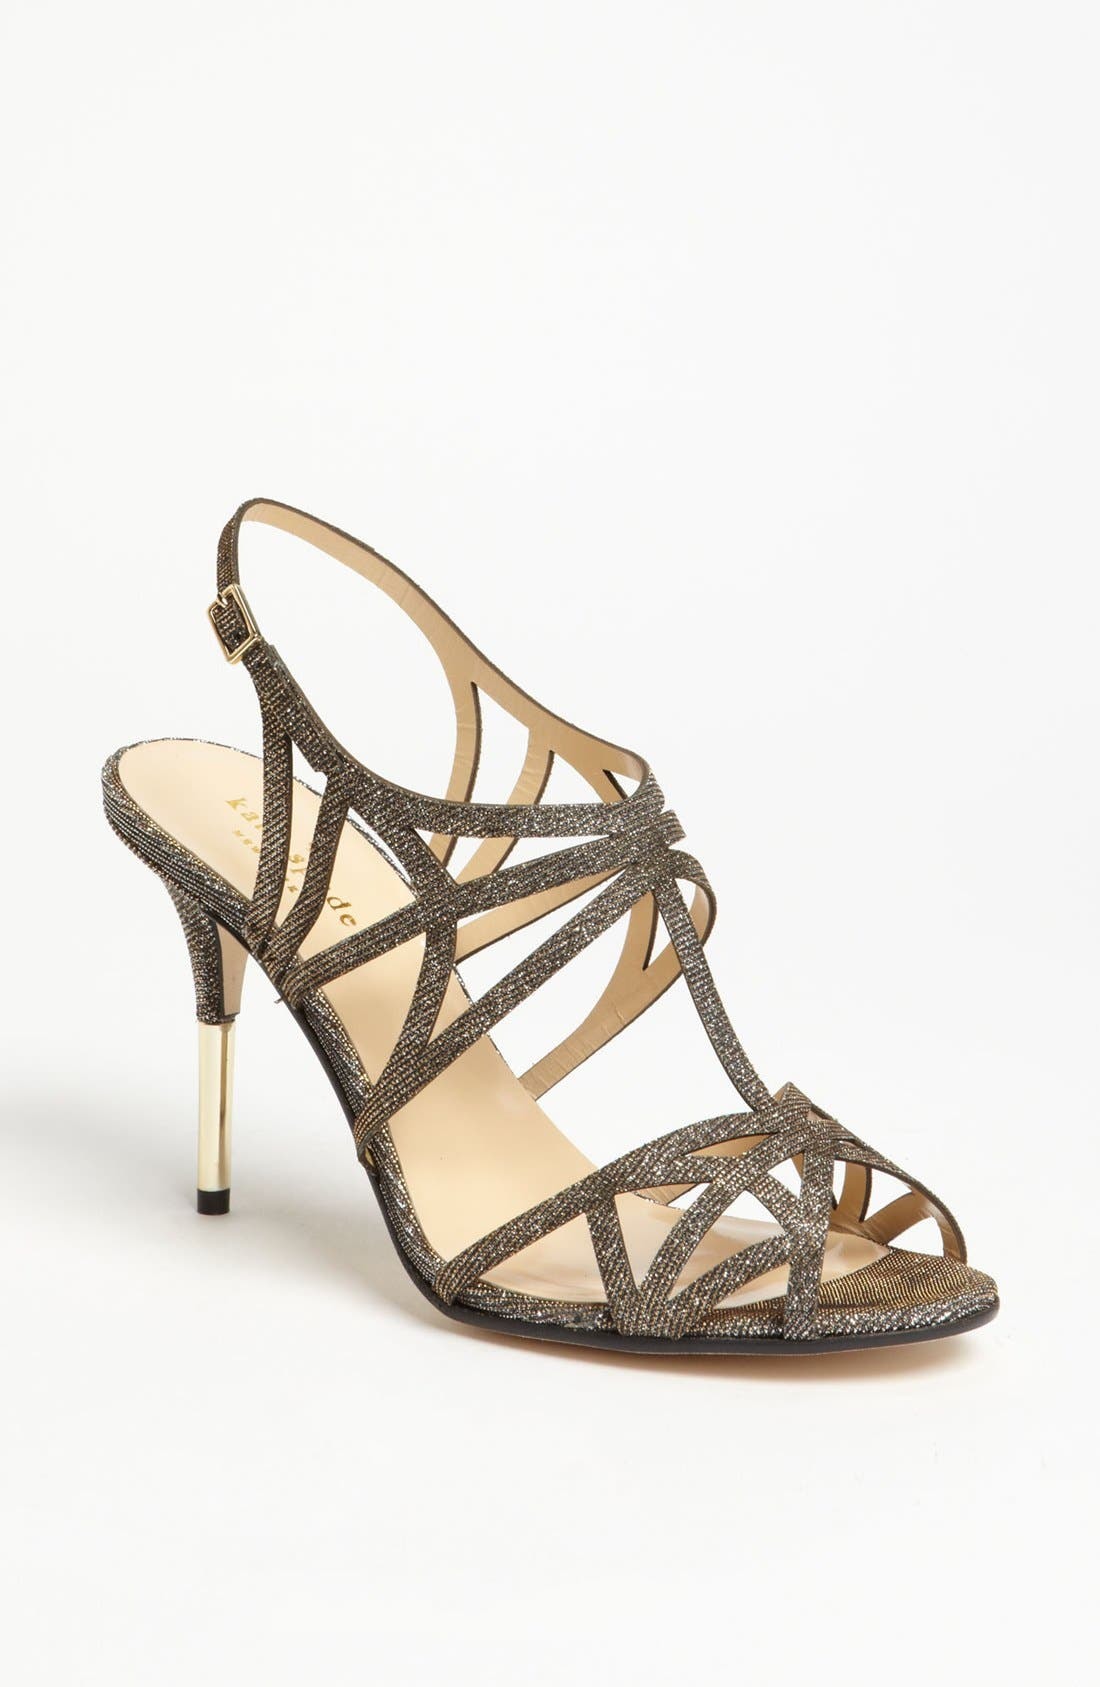 Main Image - kate spade new york 'issa' sandal